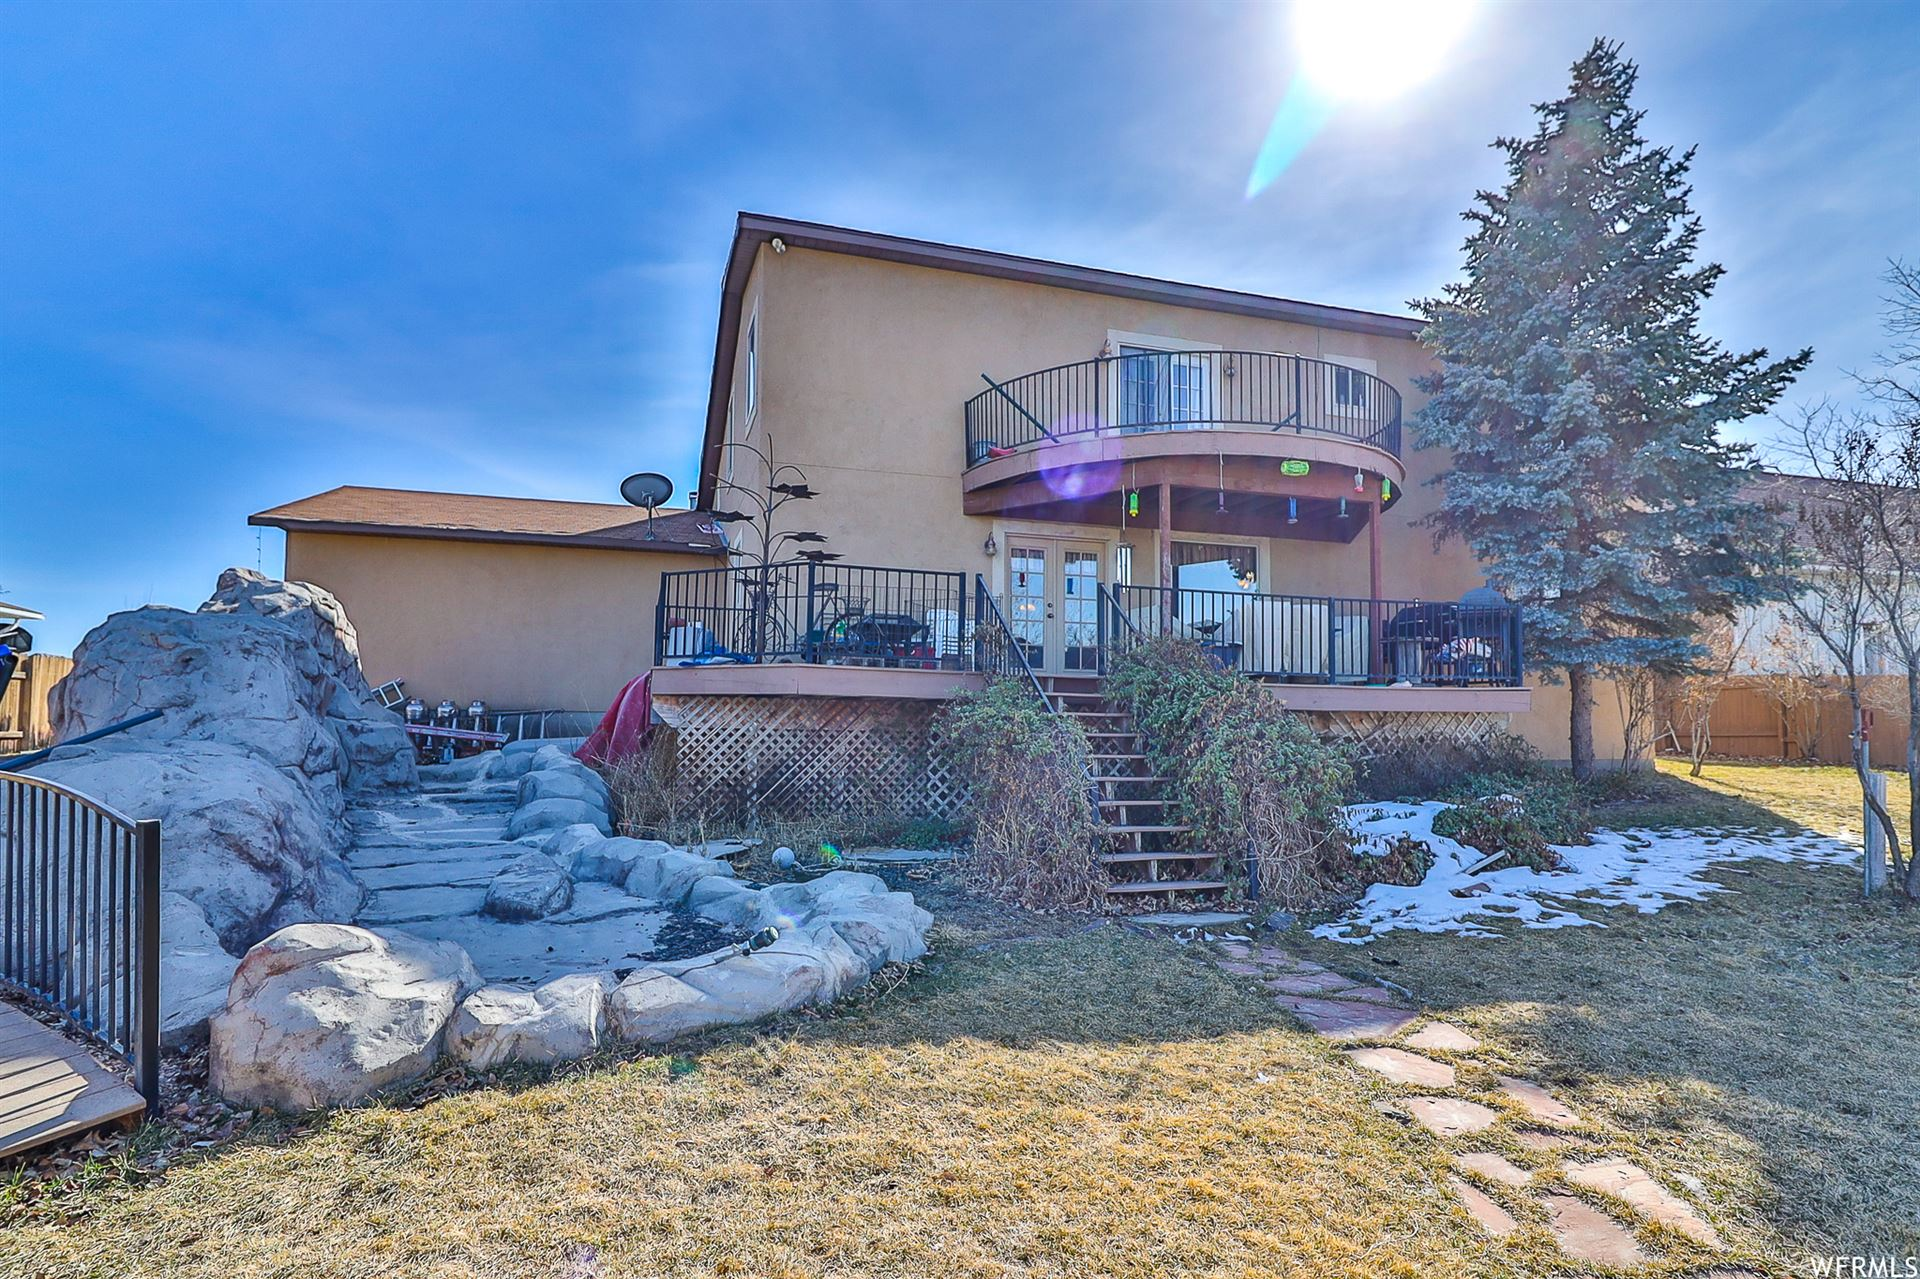 Photo of 3062 W 15000 S, Bluffdale, UT 84065 (MLS # 1728171)